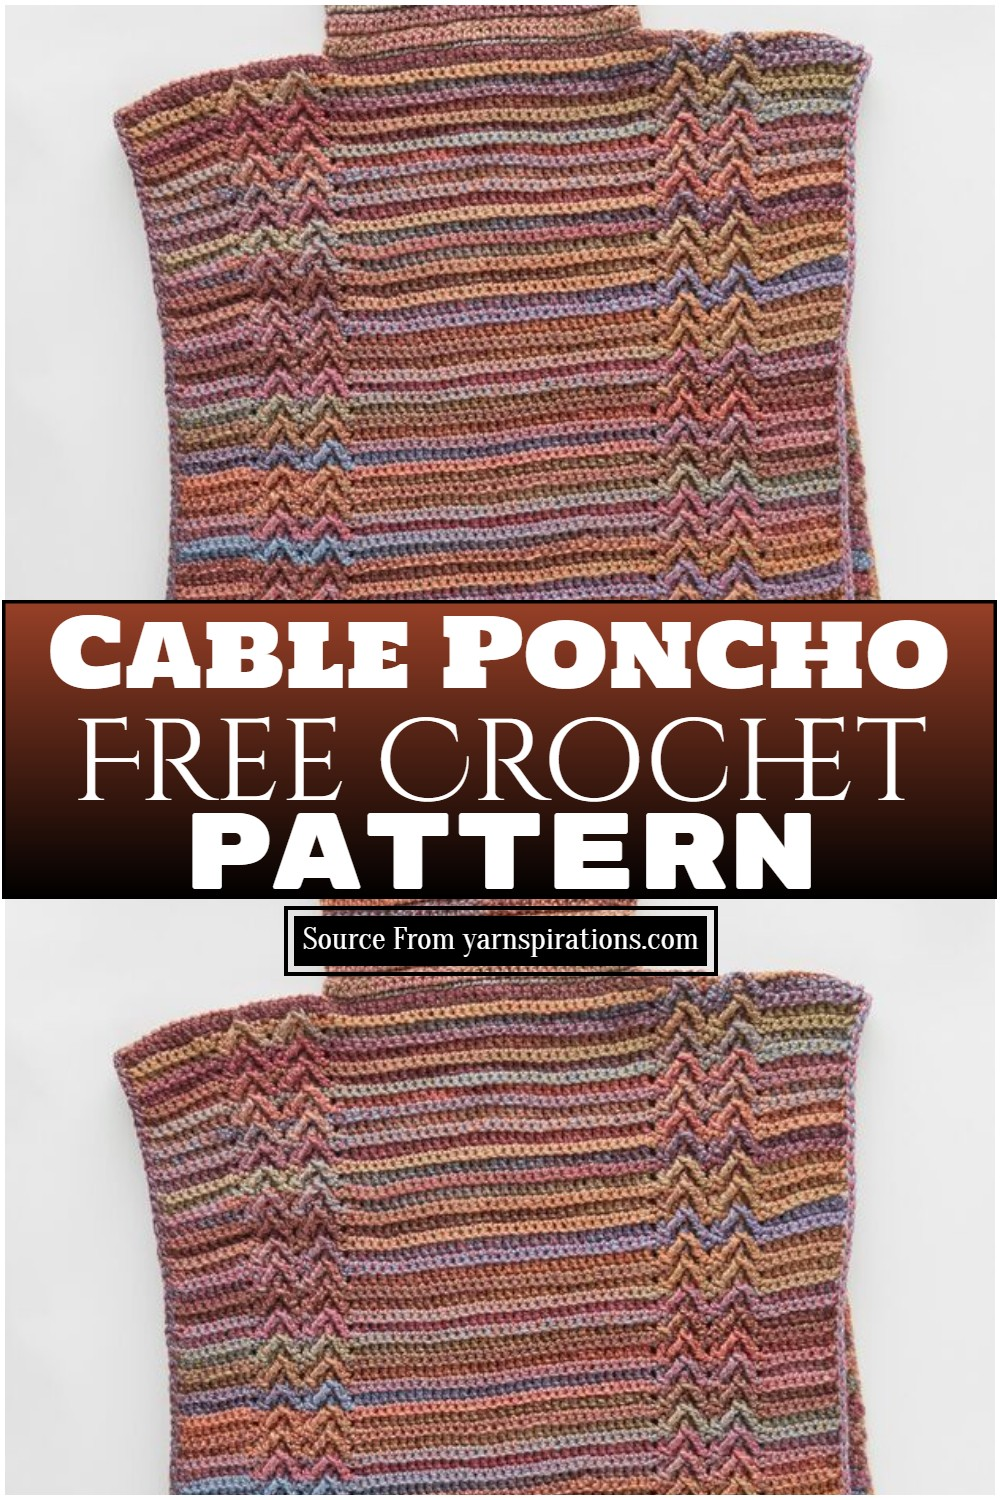 Cable Poncho Crochet Pattern